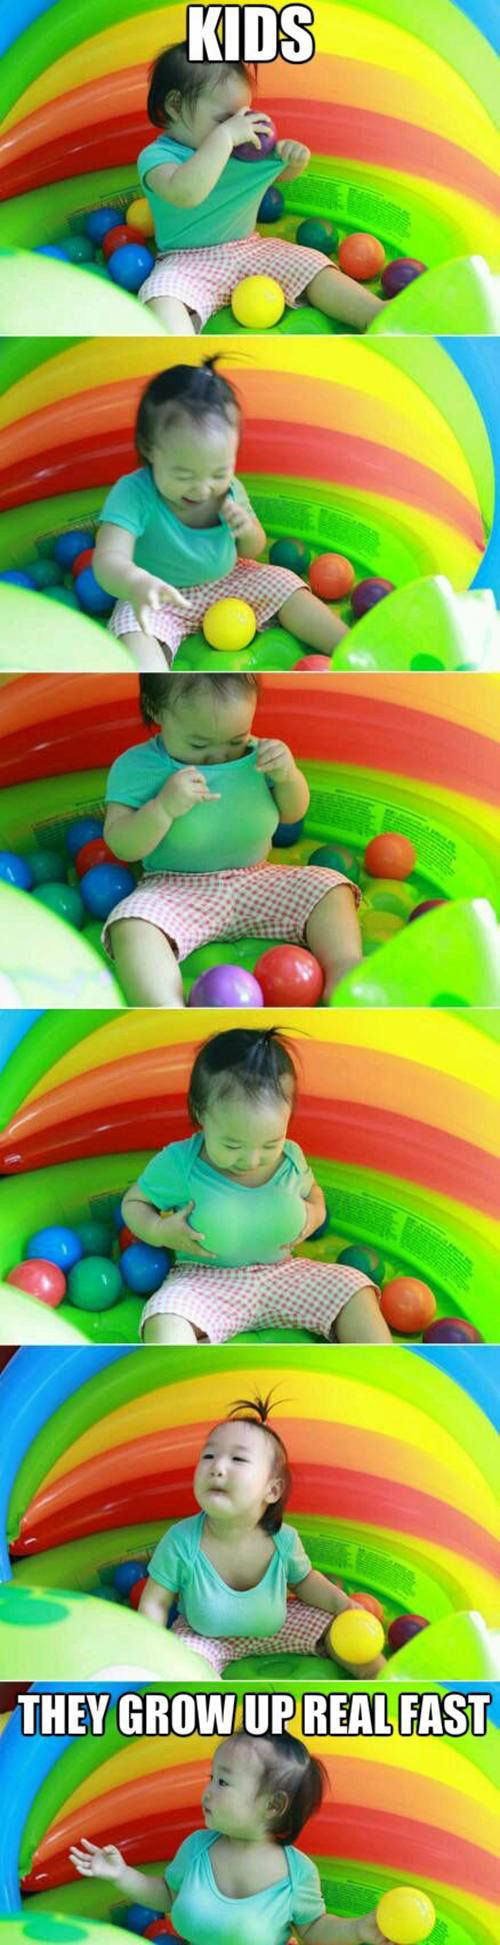 funny-picture-kid-asian-balls-toy